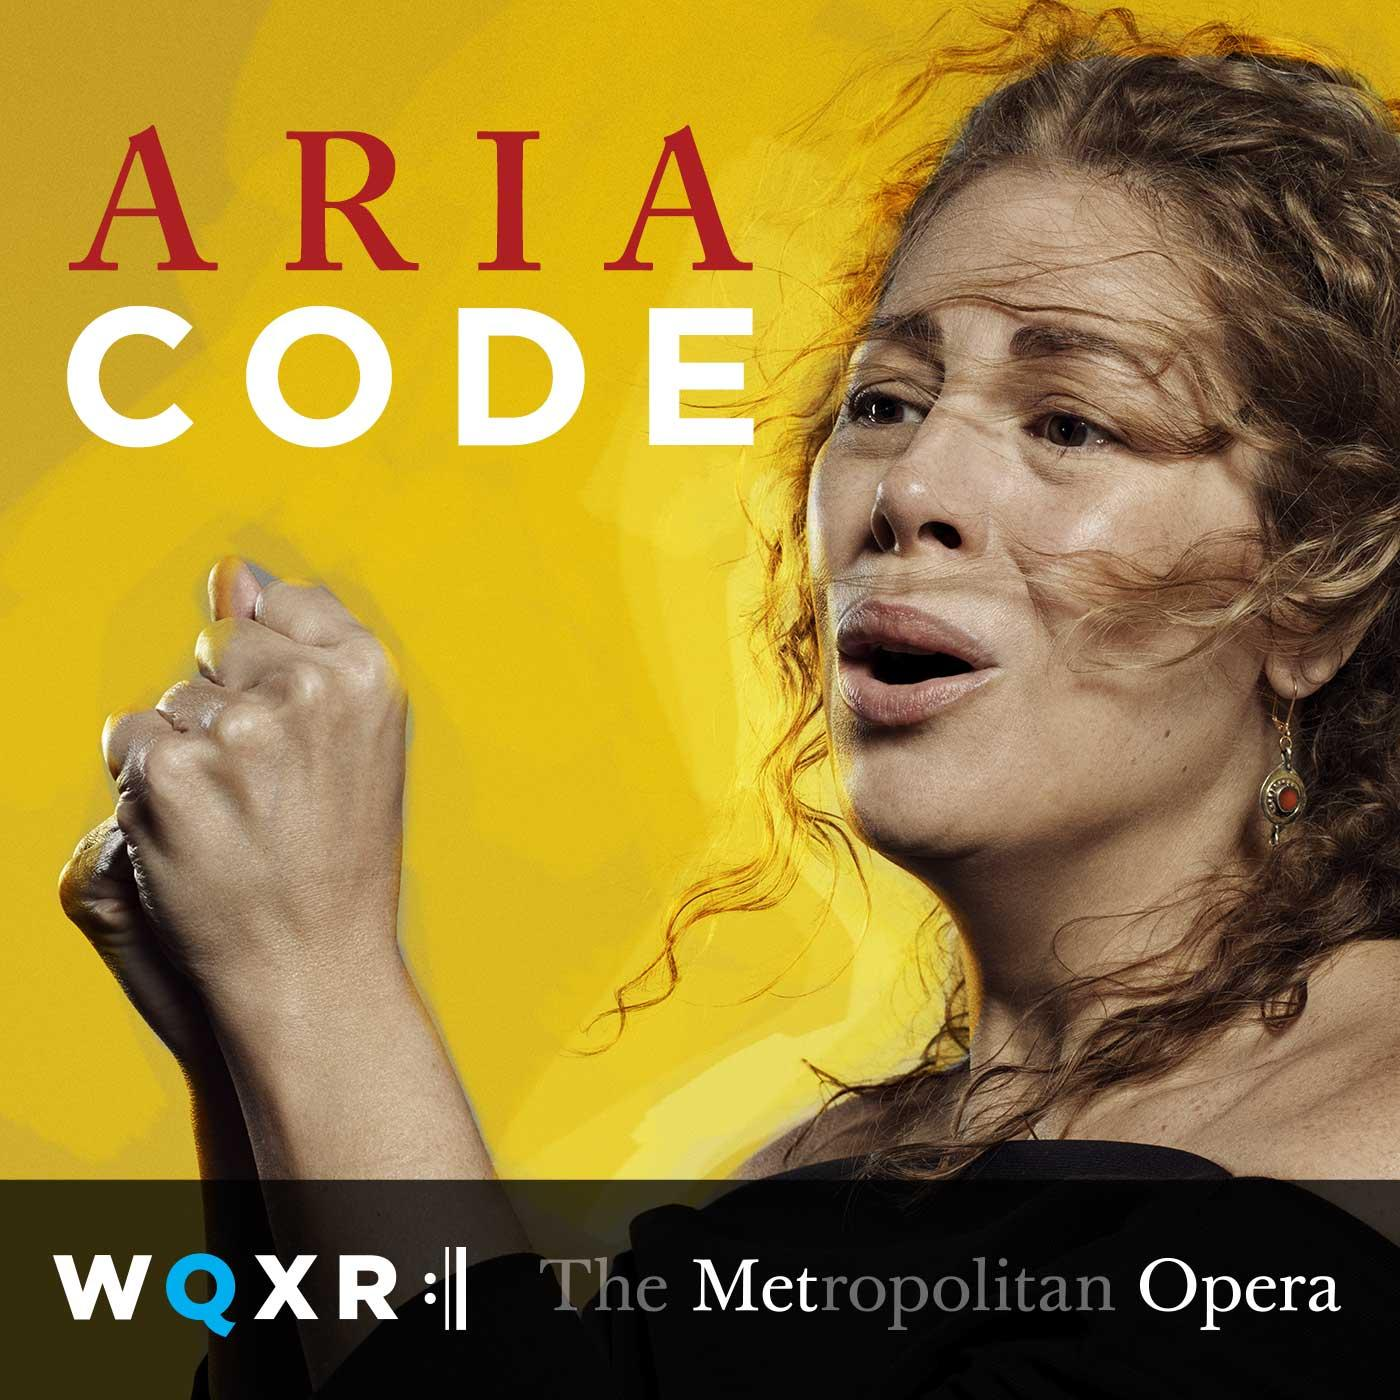 Reloaded twaddle – RT @WQXR: Your next favorite podcast is almost here!Aria Code reveals the magic...